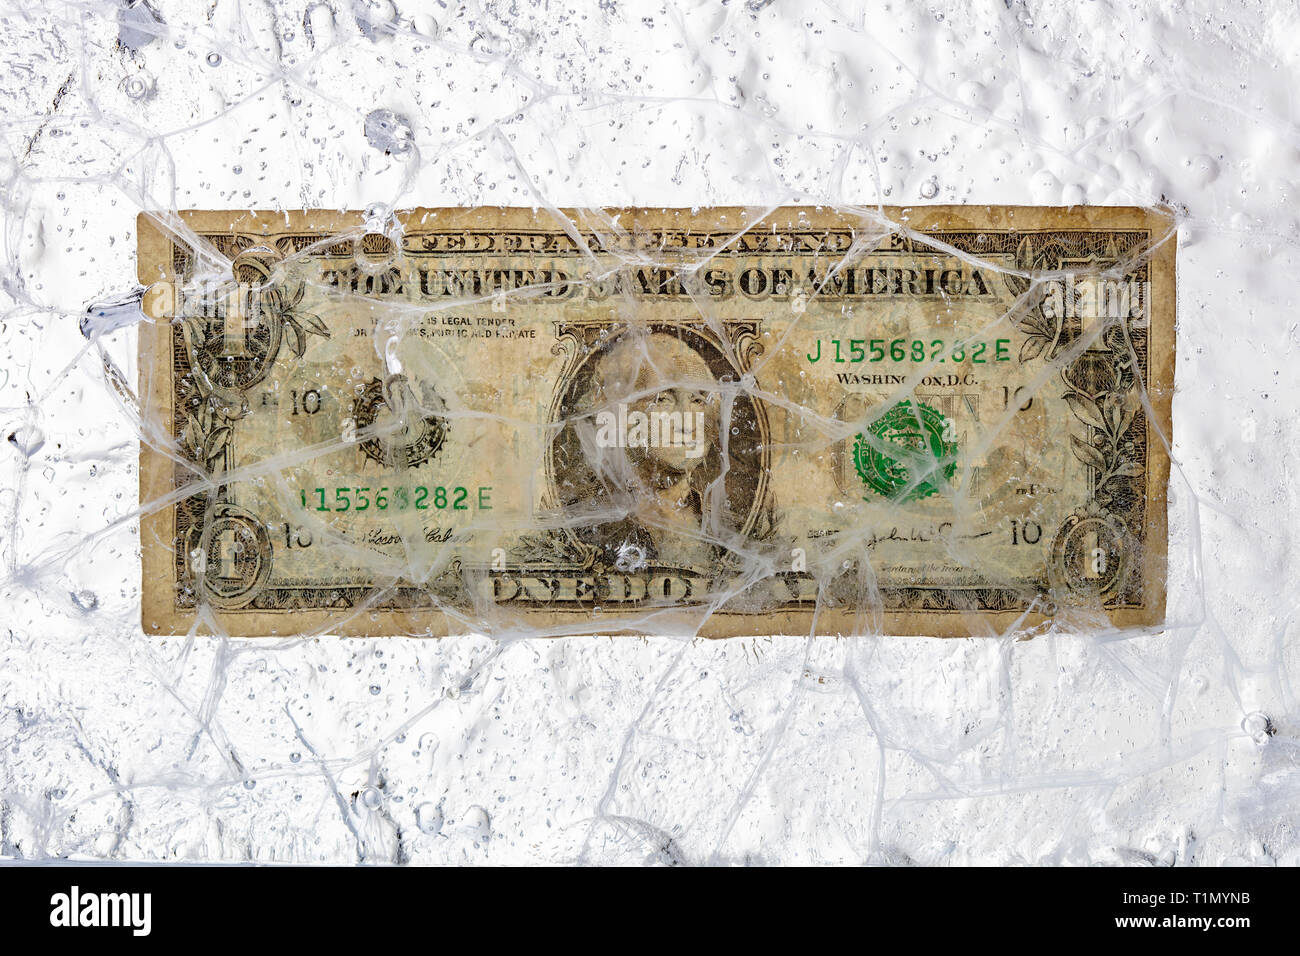 Dollar bill frozen in a block of ice. Concept of blocked capital and financial crisis. - Stock Image